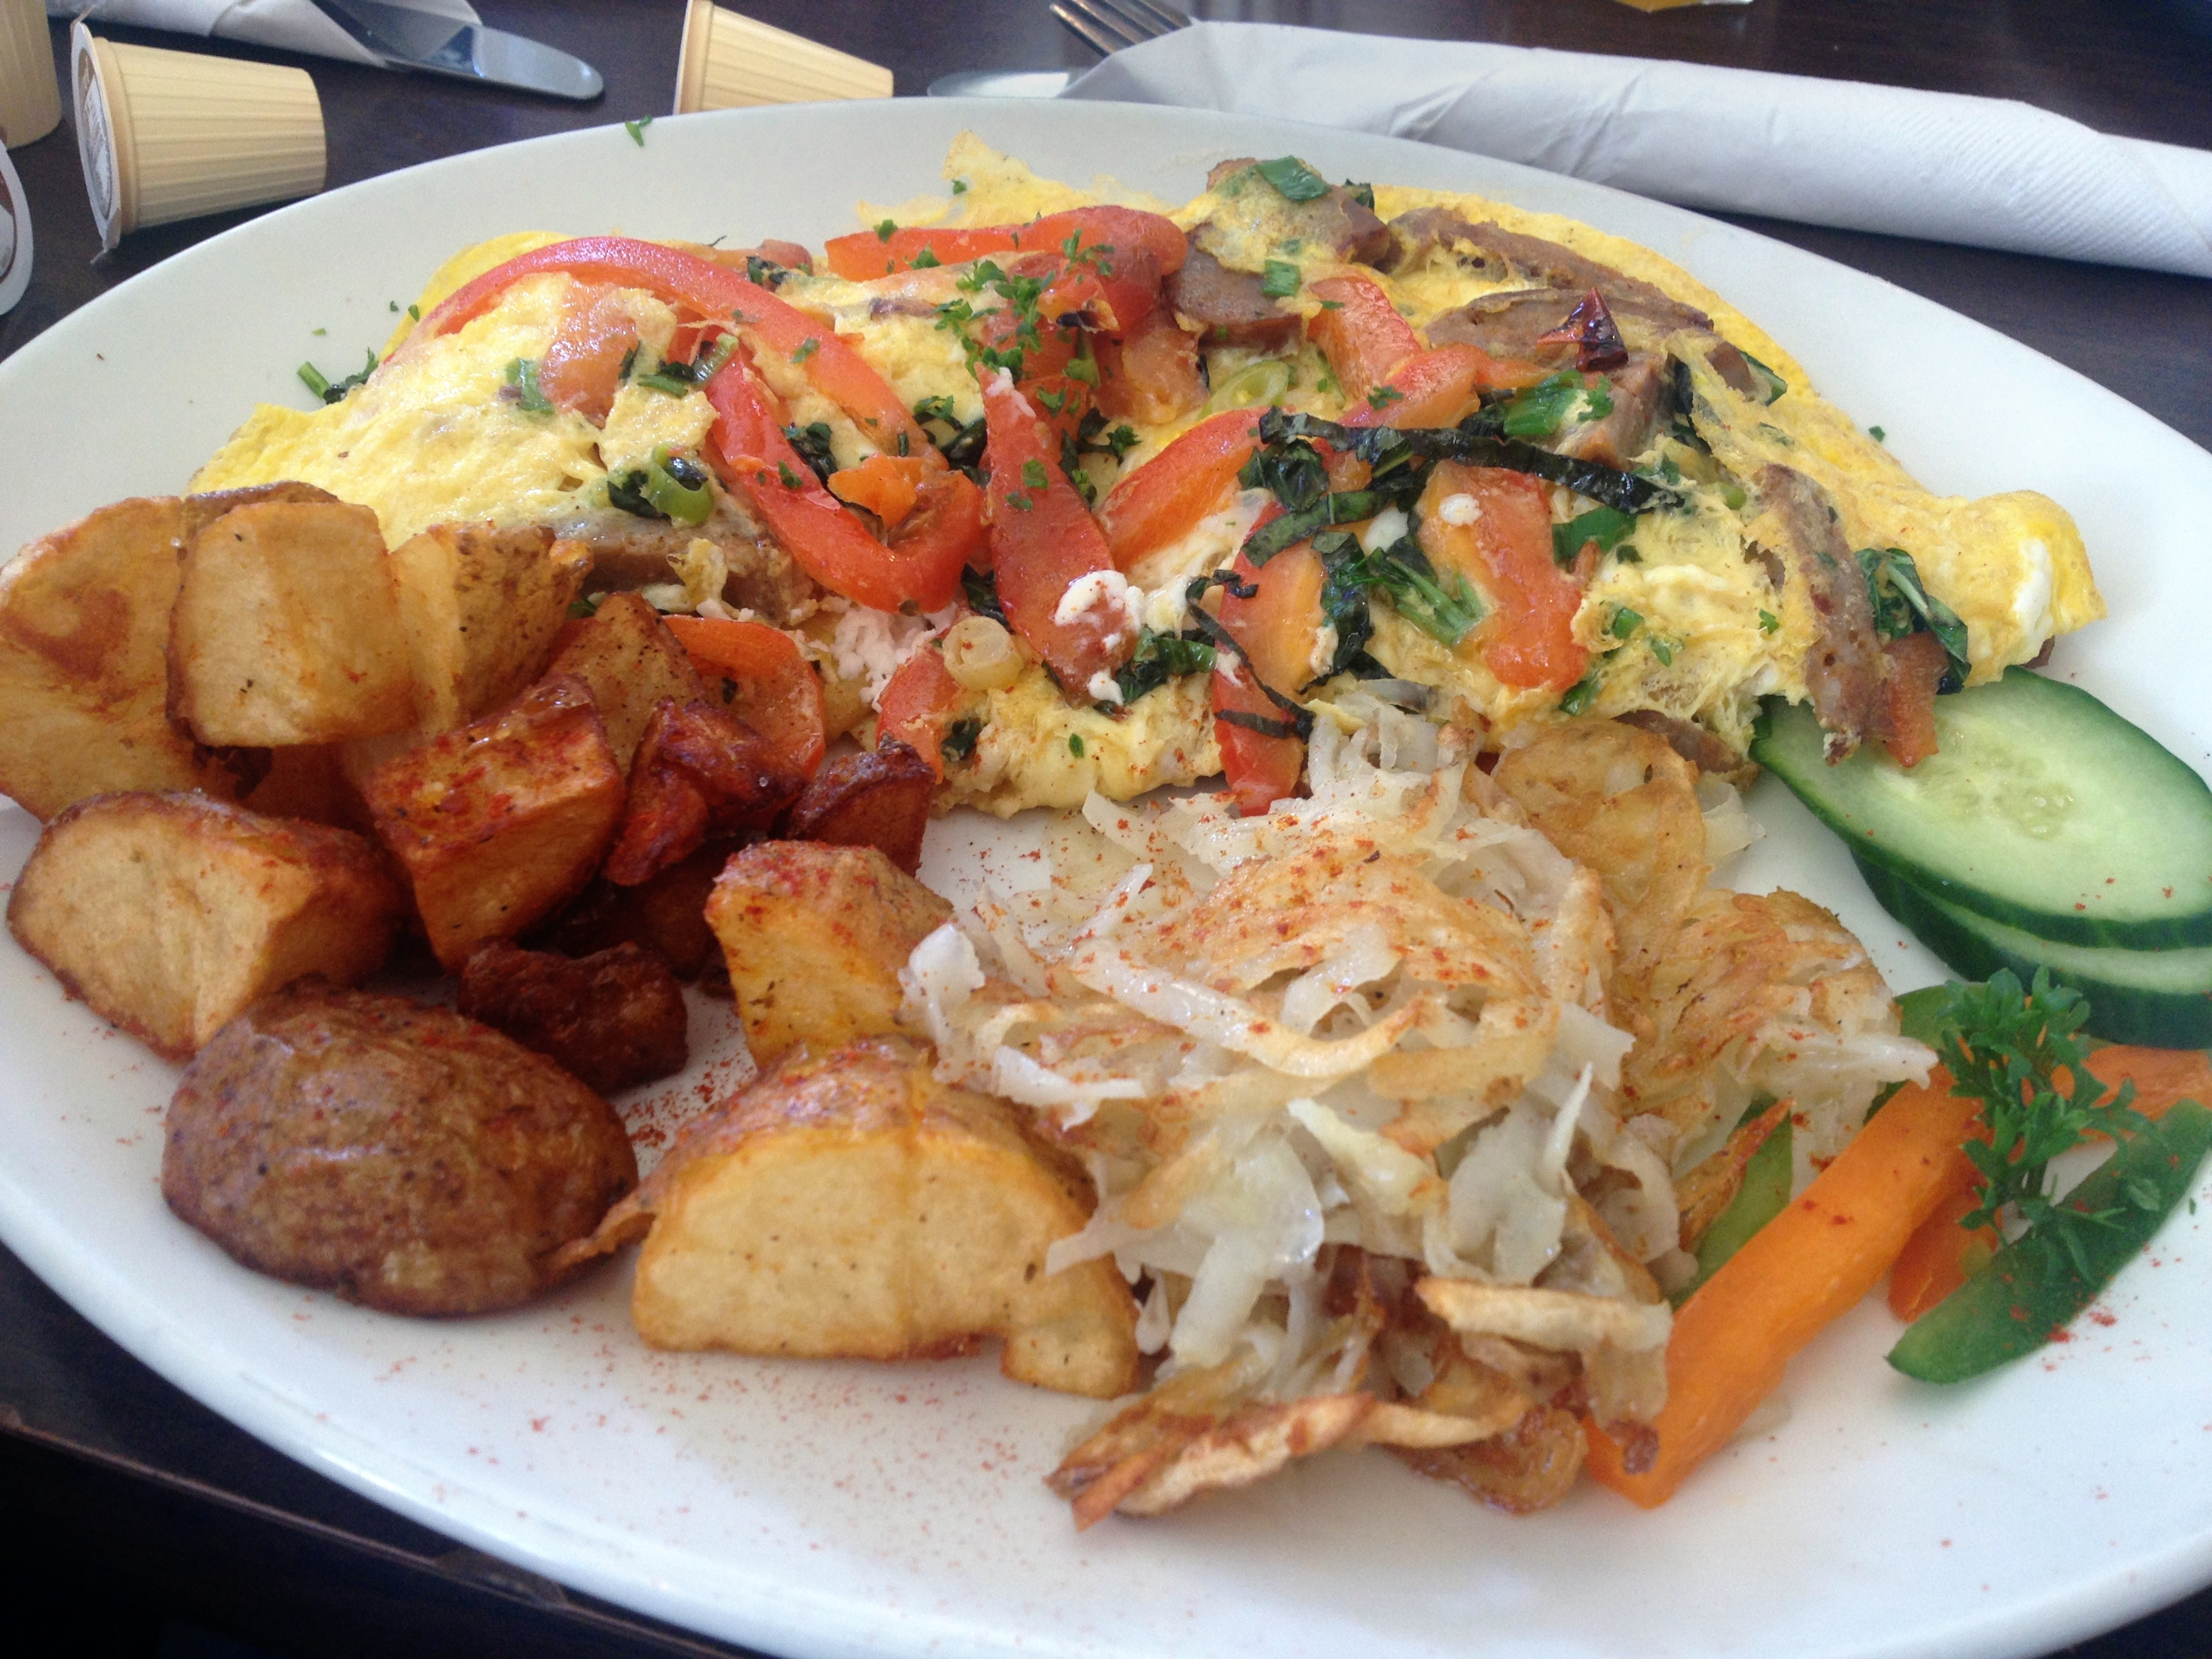 Italian Omelette with sausage, red pepper and goat cheese Figs Brunch Toronto